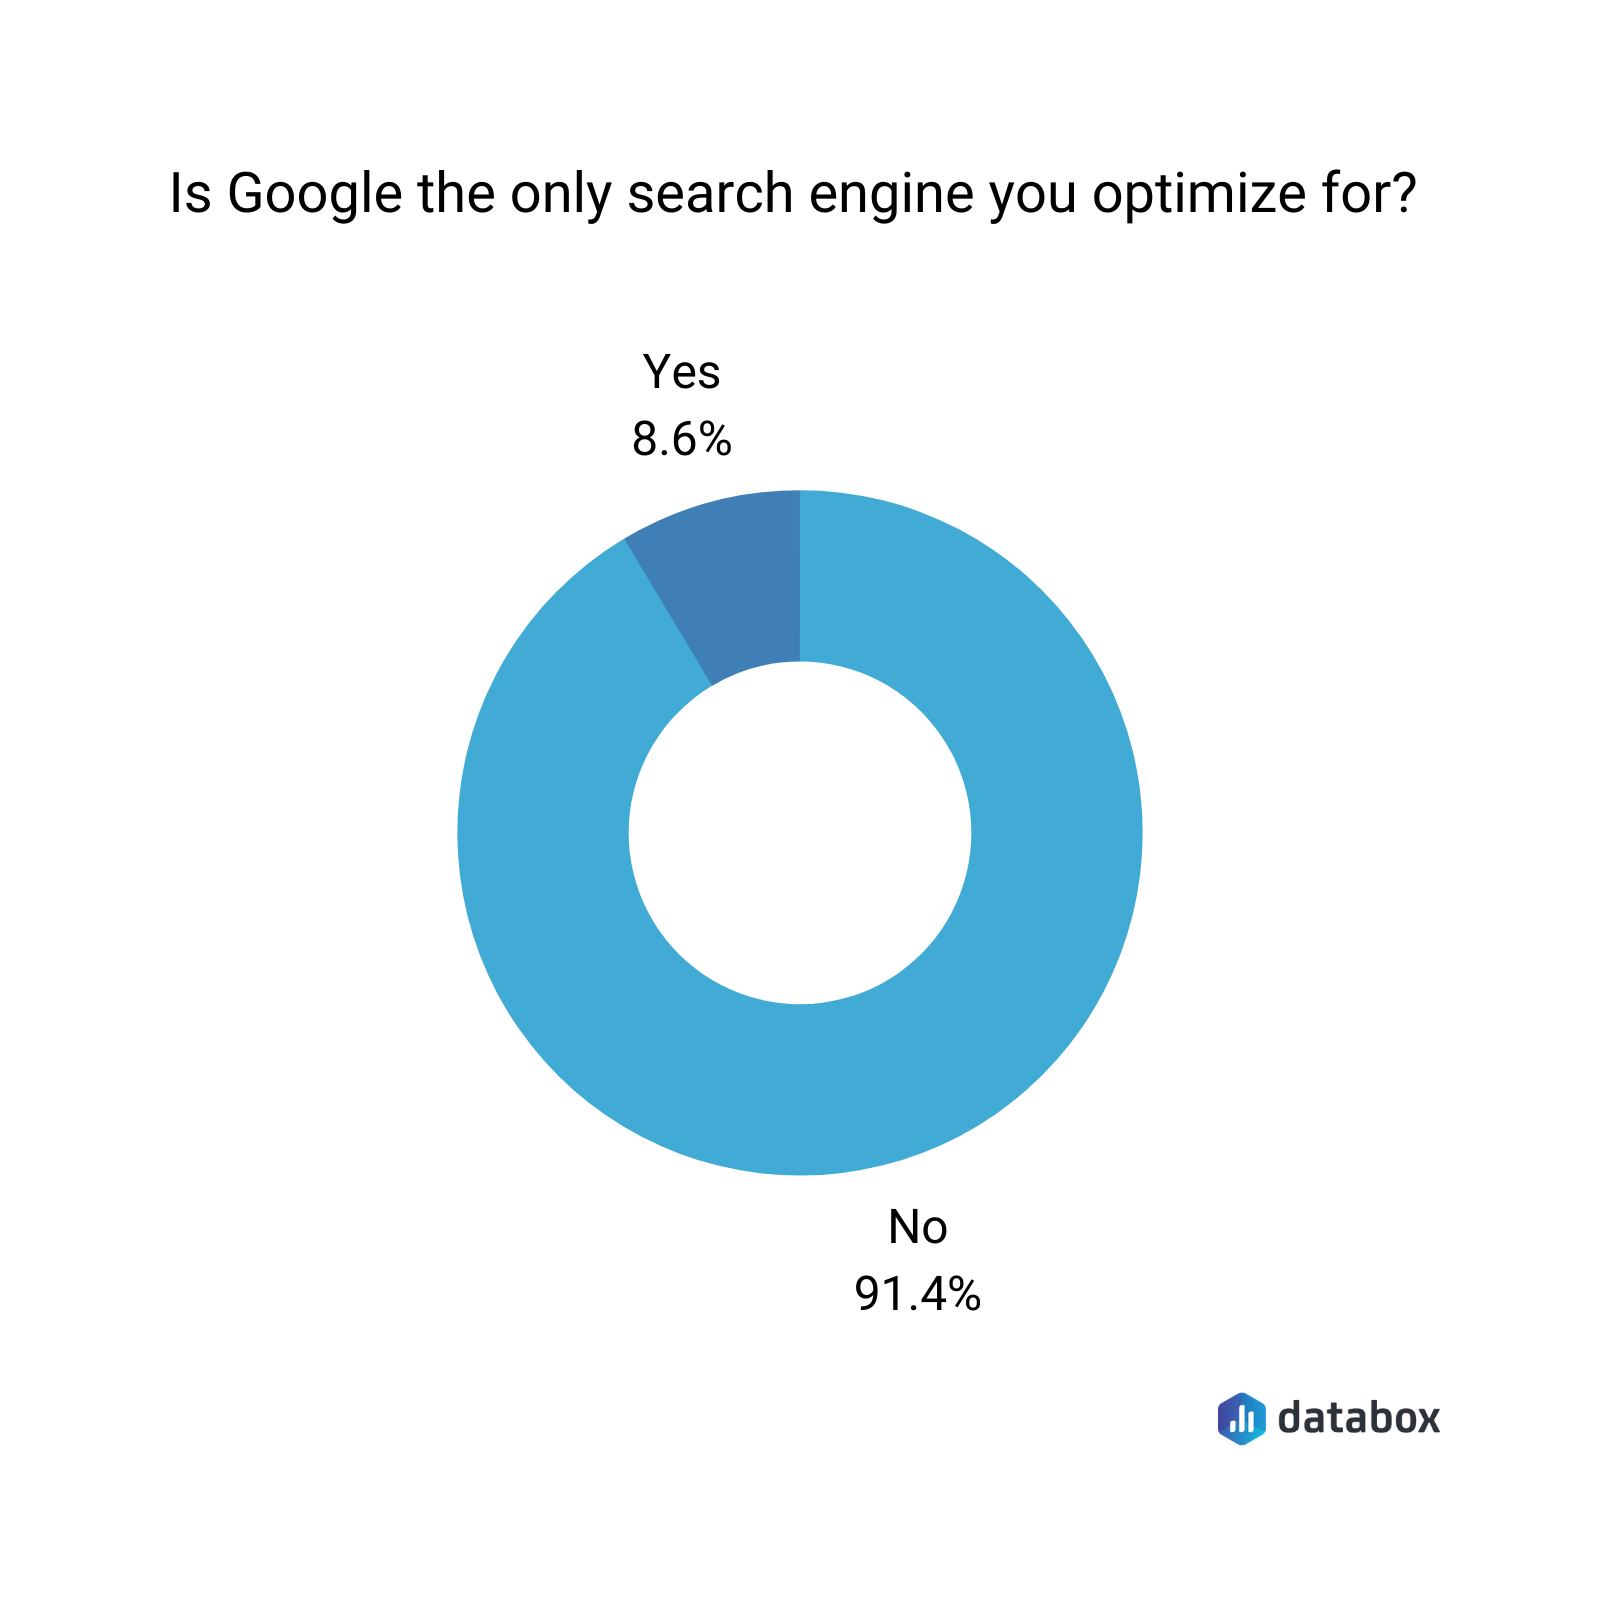 is Google the only search engine you optimize for